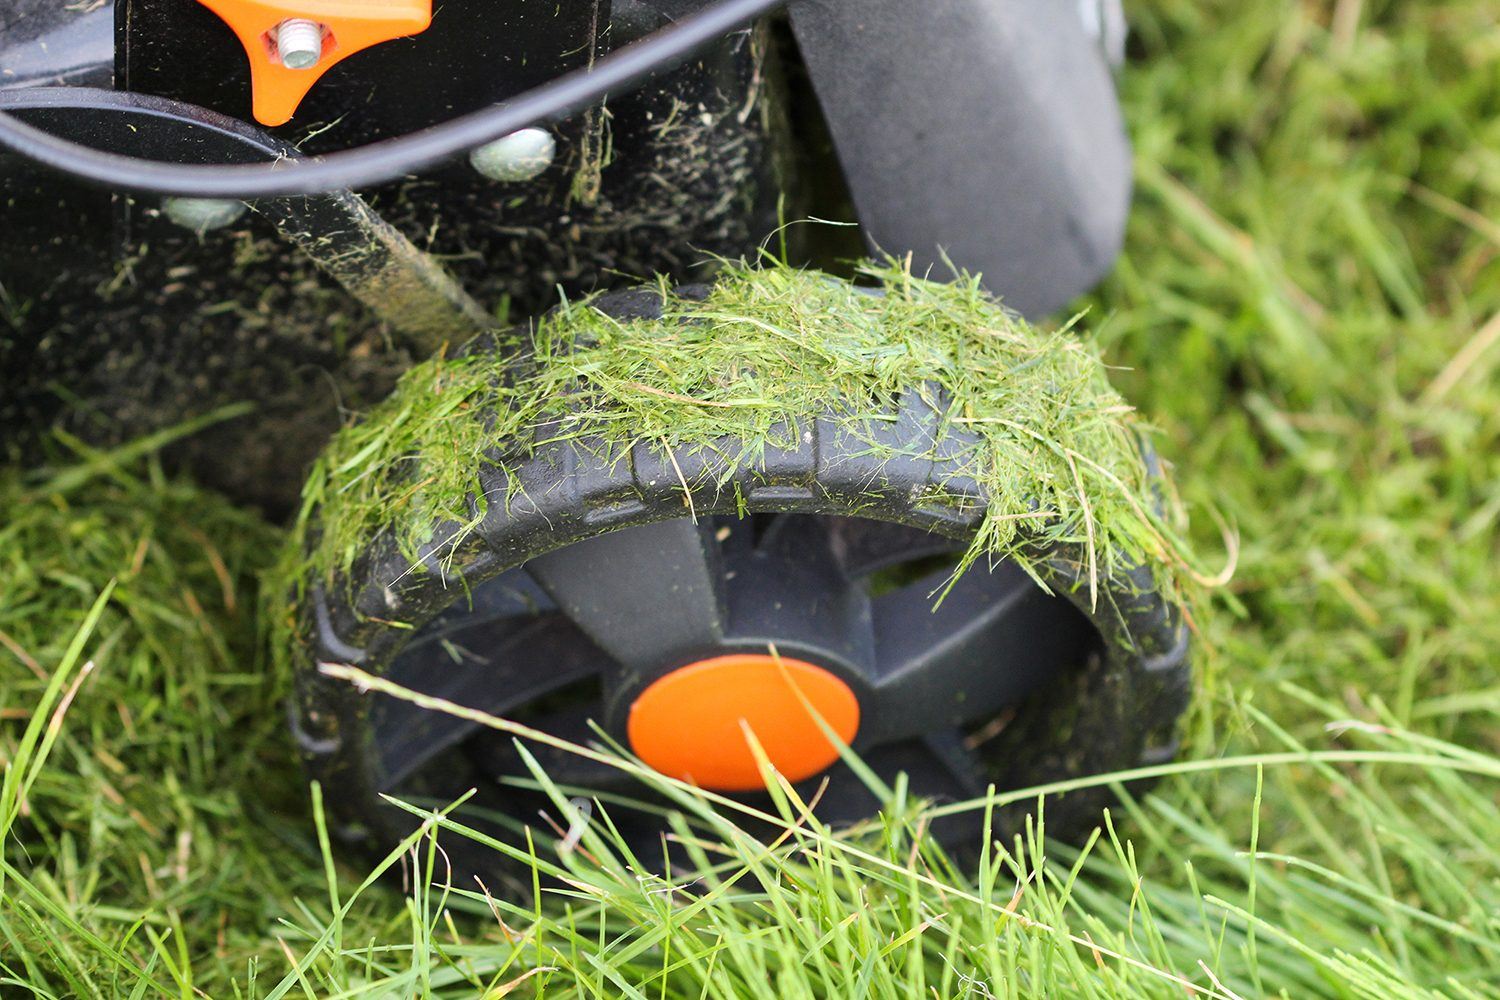 wet grass stuck to lawn mower tires